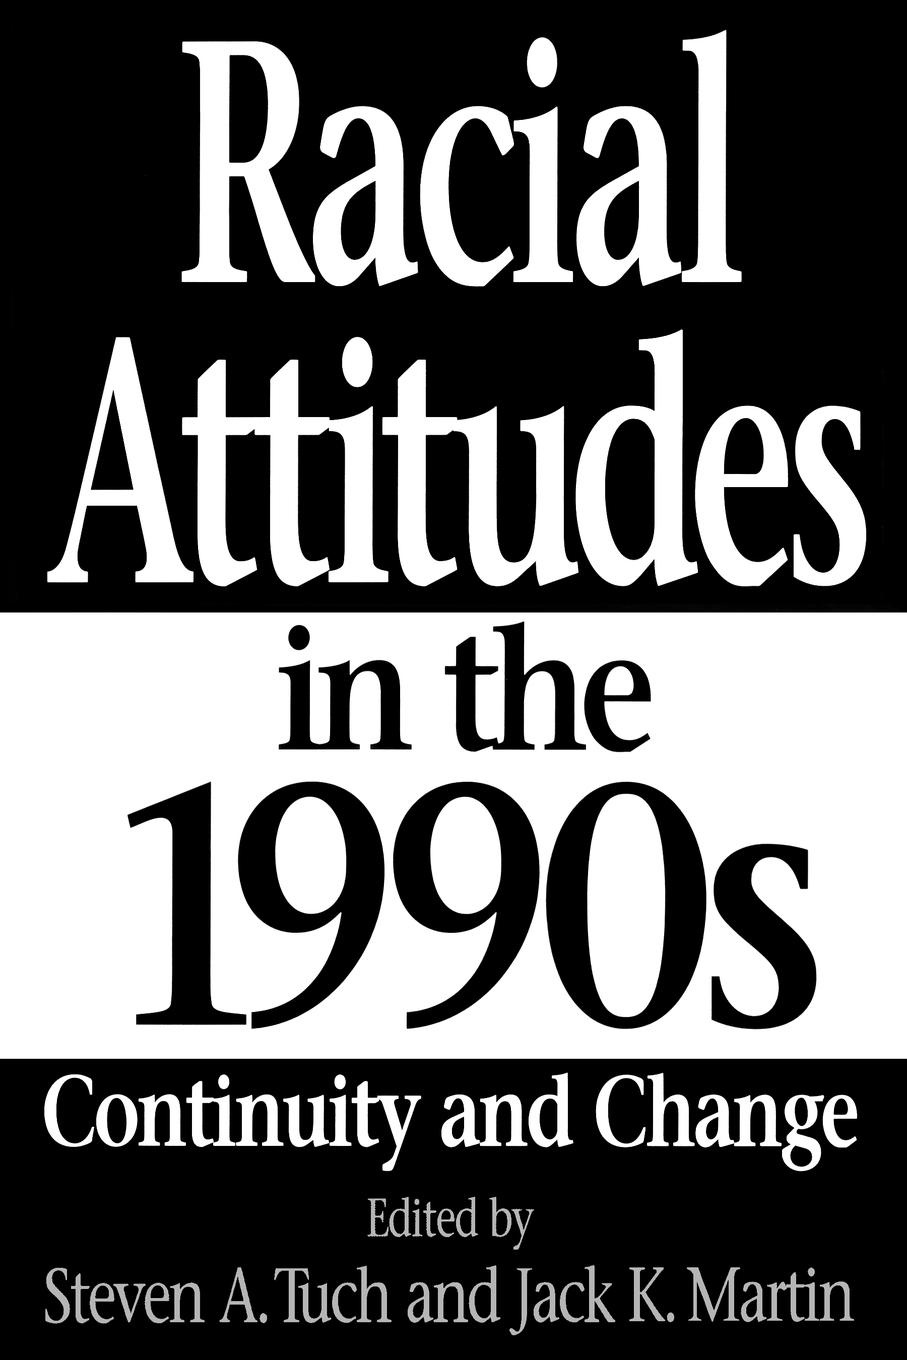 Racial Attitudes in the 1990s. Continuity and Change